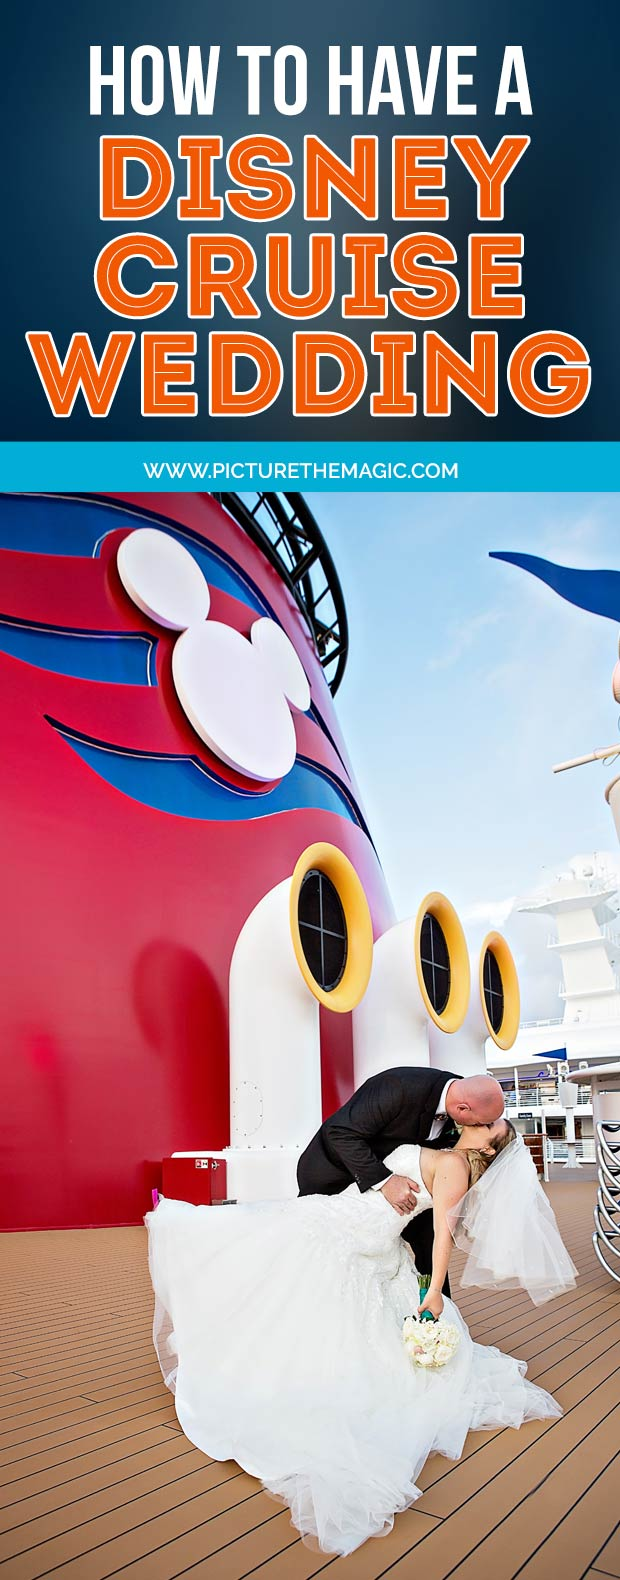 How to Have a Disney Cruise Wedding